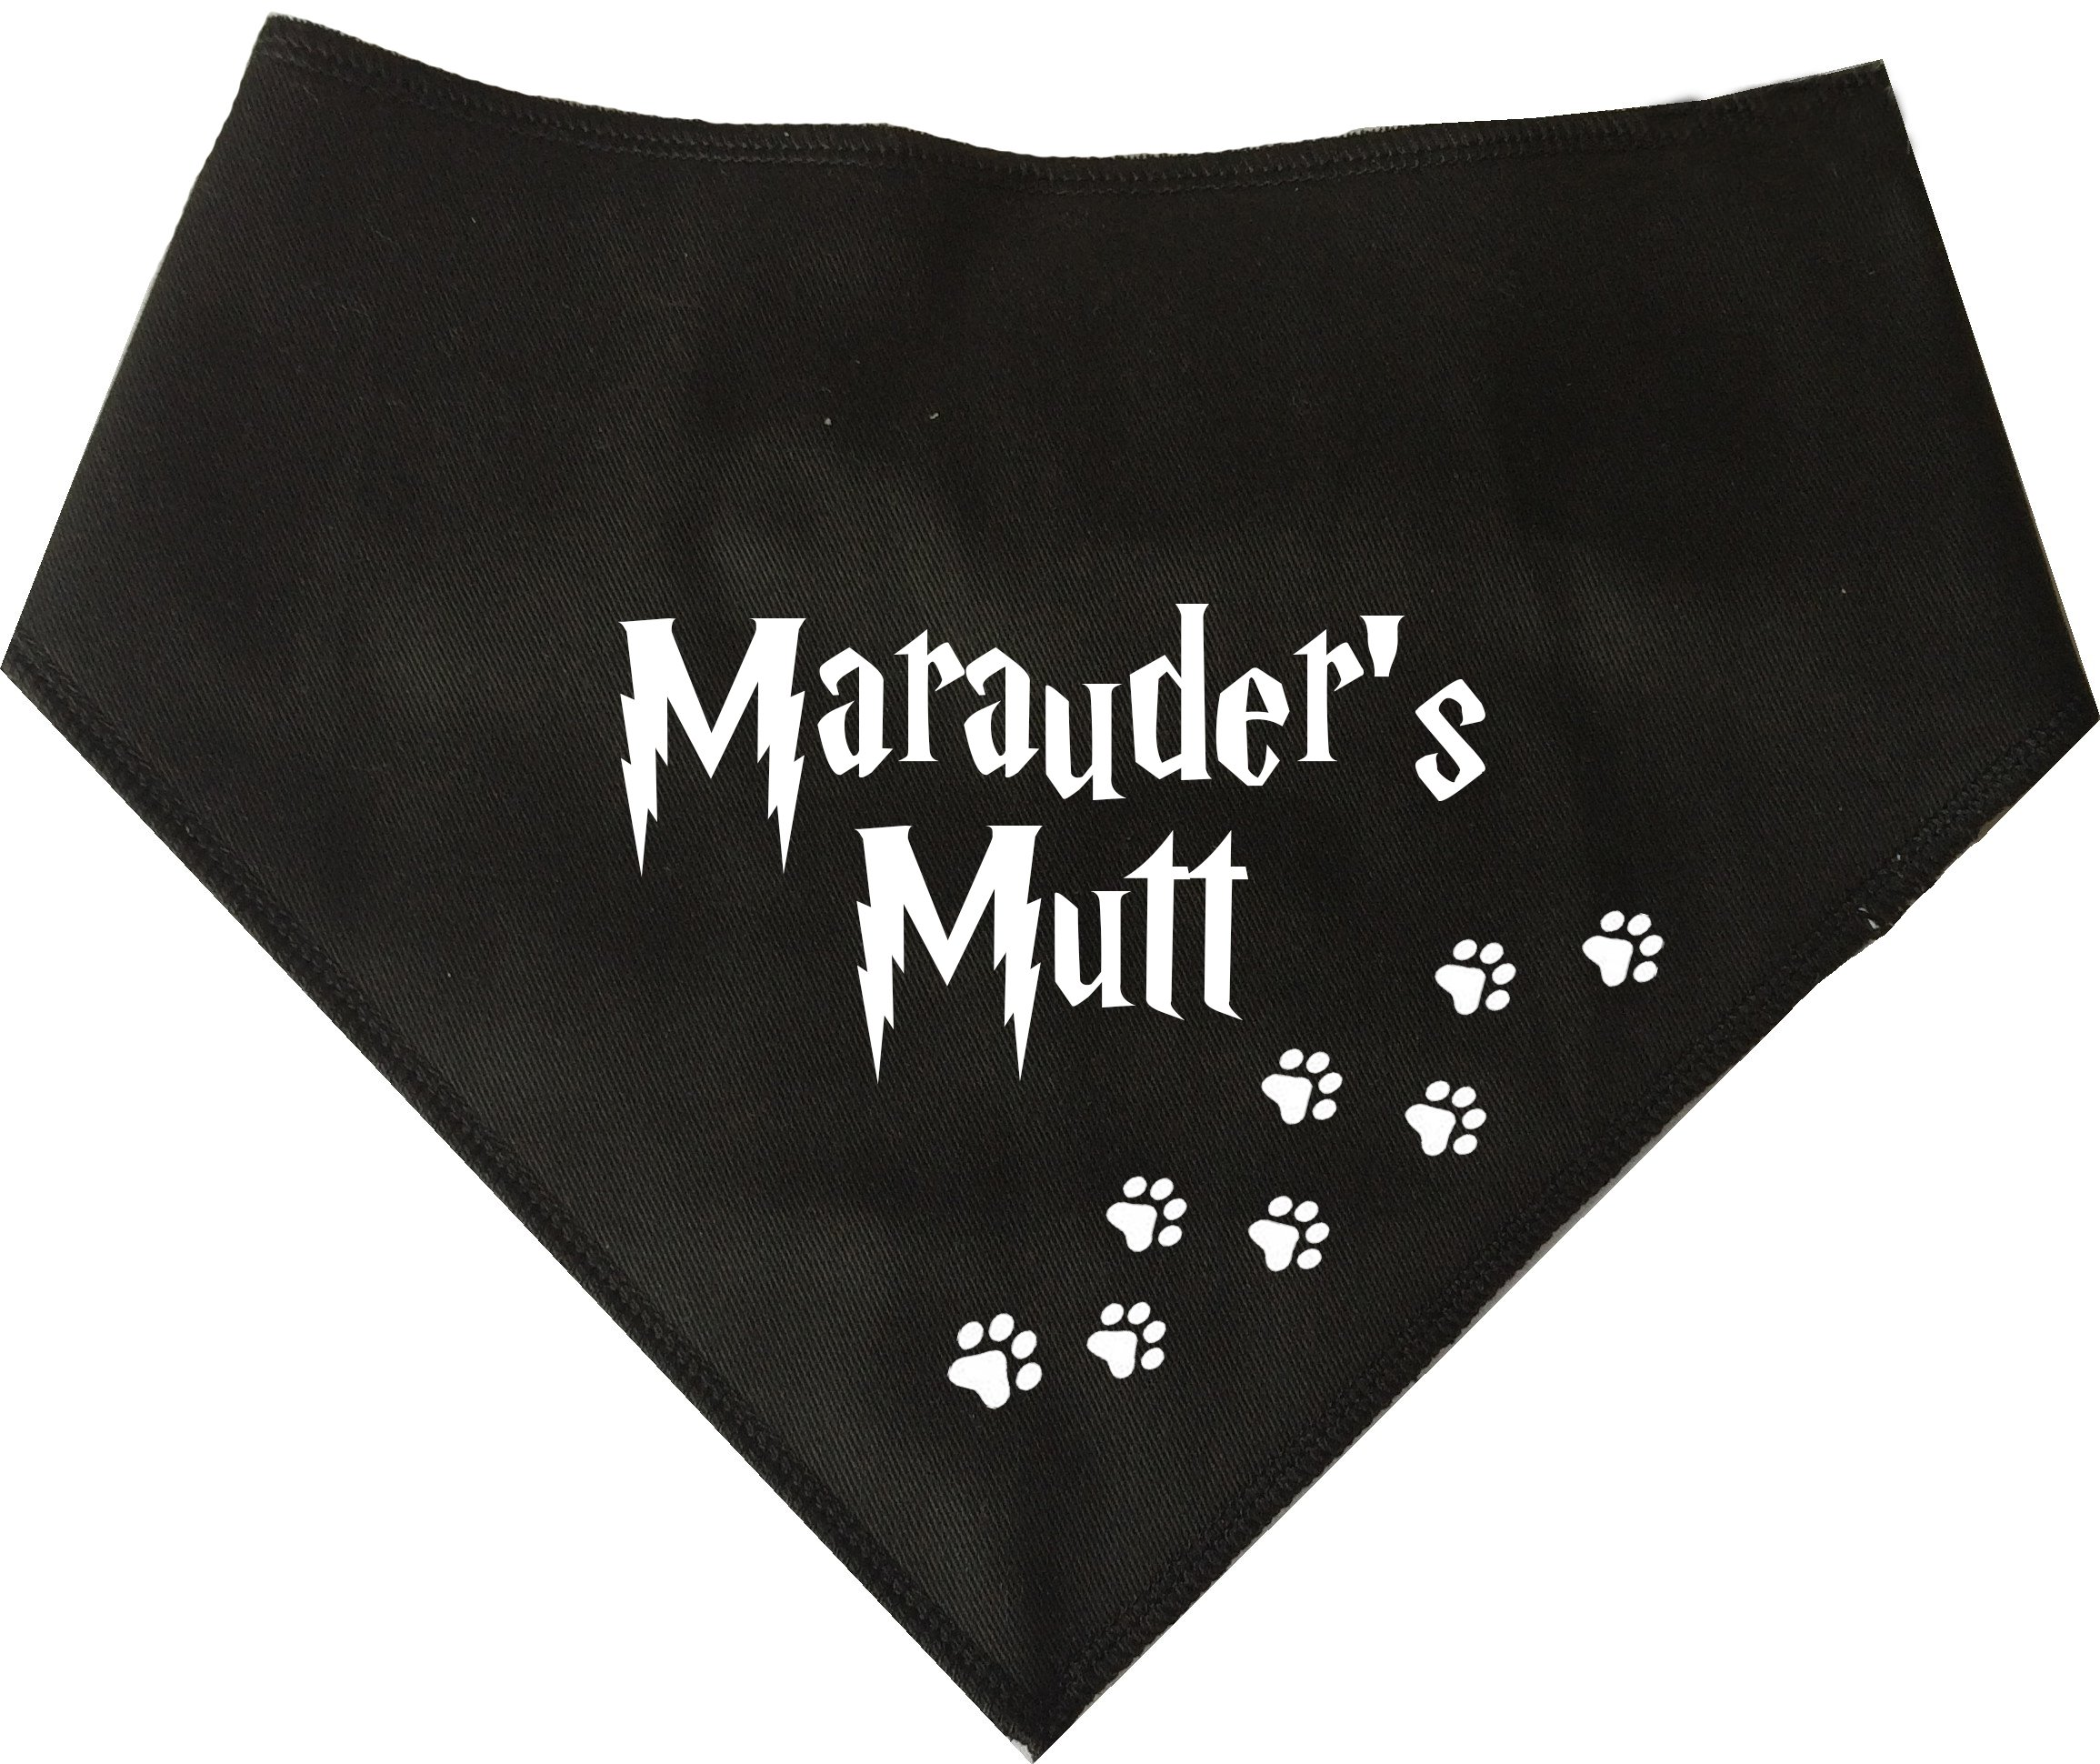 Spoilt Rotten Pets Dog Bandana (S2) -Harry Potter Marauders Mutt – For Dogs Four Adjustable From A Tiny Chihuahua to An Extra Large St Bernard (Small-Medium dog)